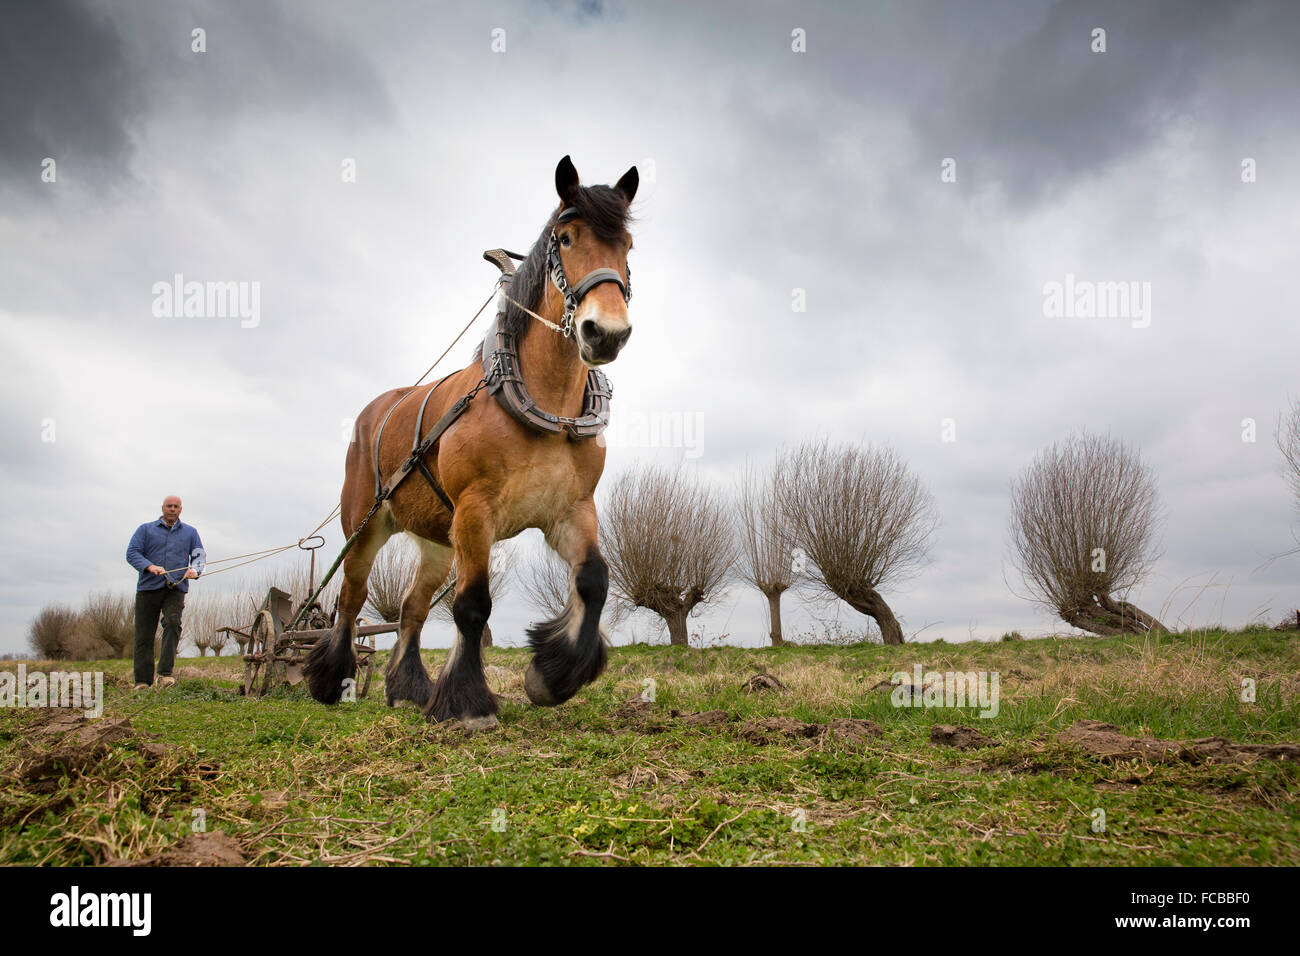 Netherlands, Cadzand, Draft-horse plowing. Re-enactment. Film set - Stock Image